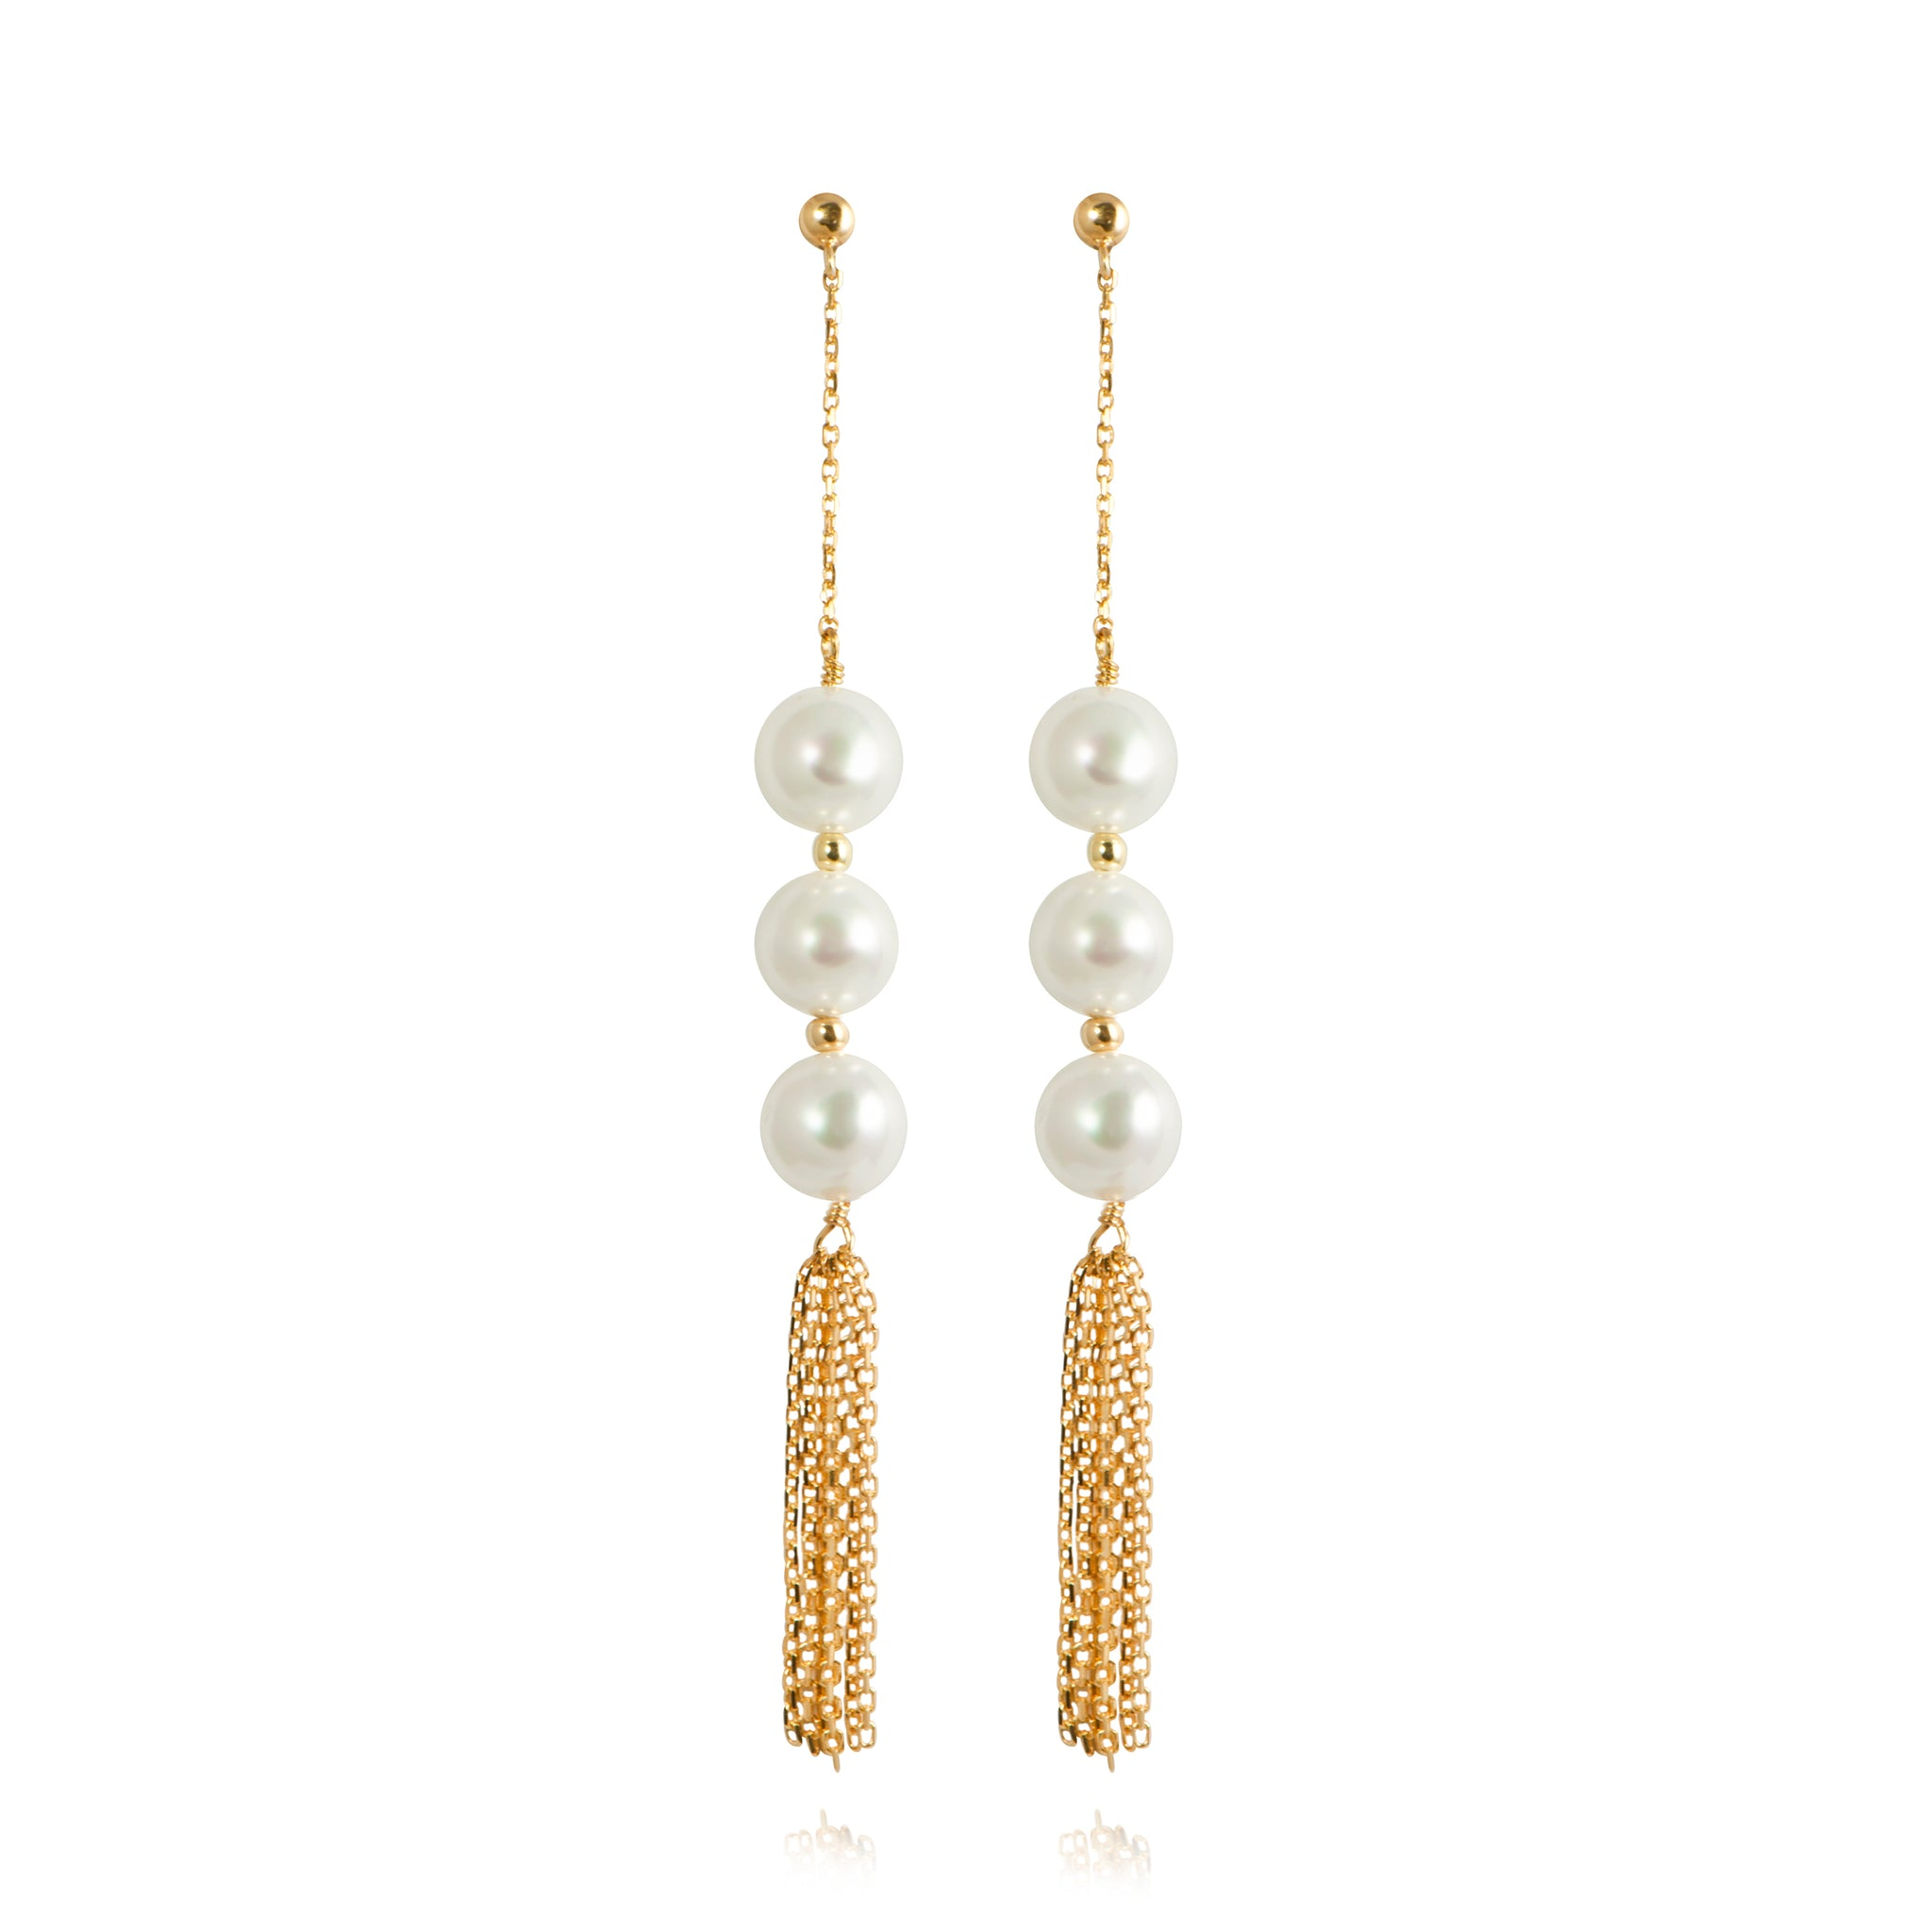 APPLES & FIGS - PEARL DROP FOUNTAIN TASSEL EARRINGS